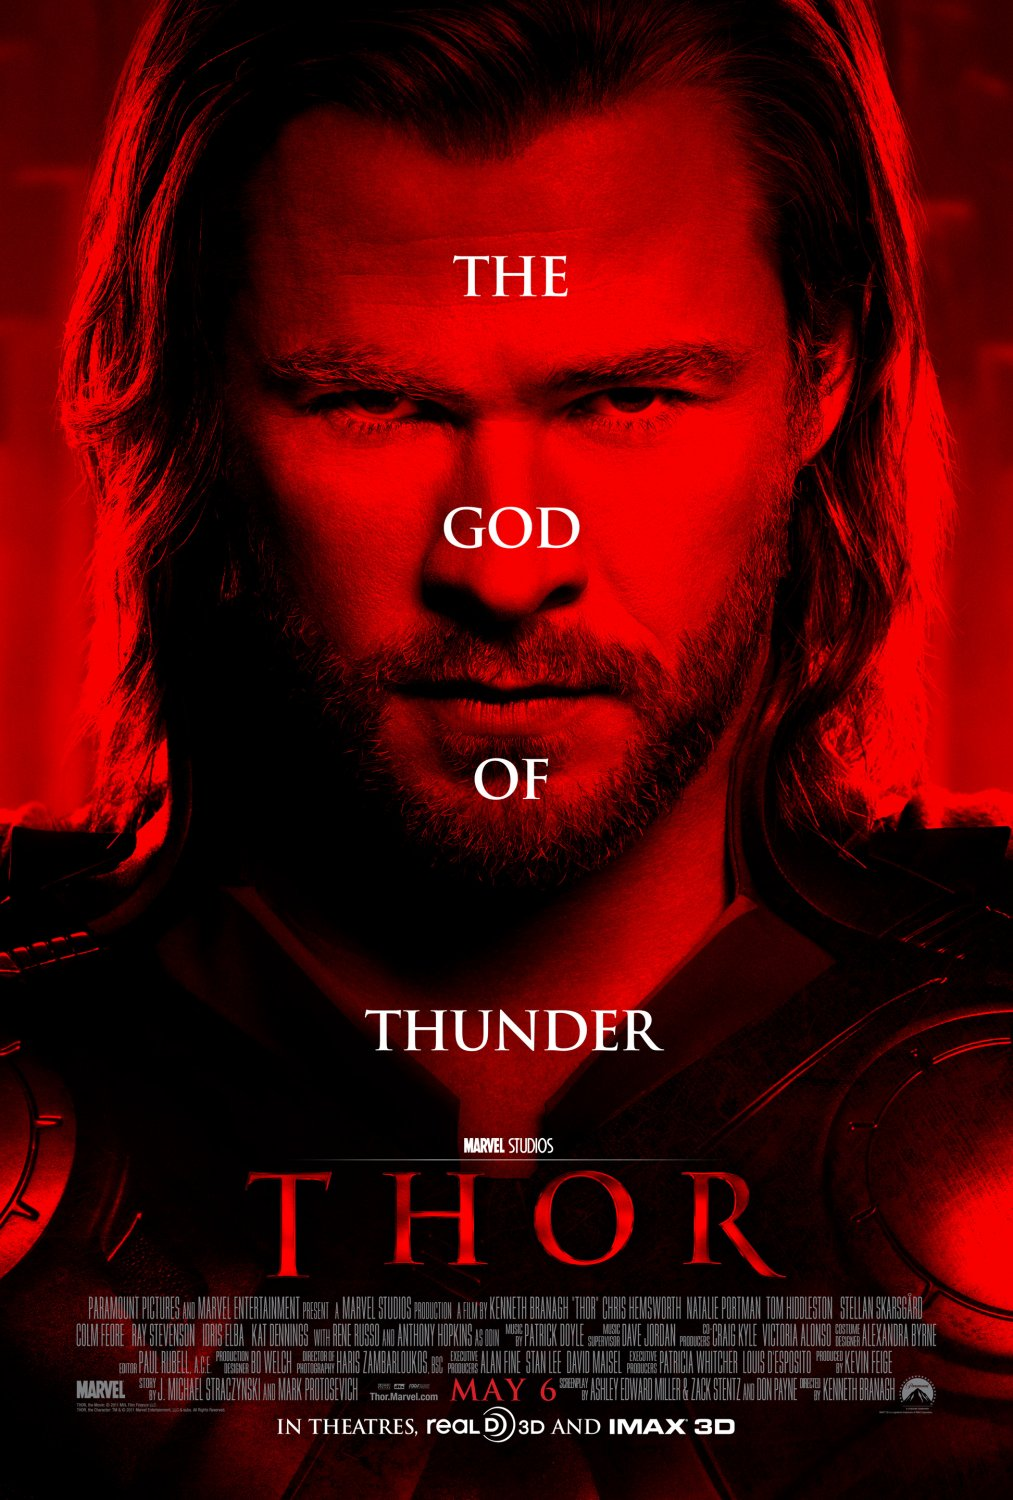 Thor (2011) Movie Review